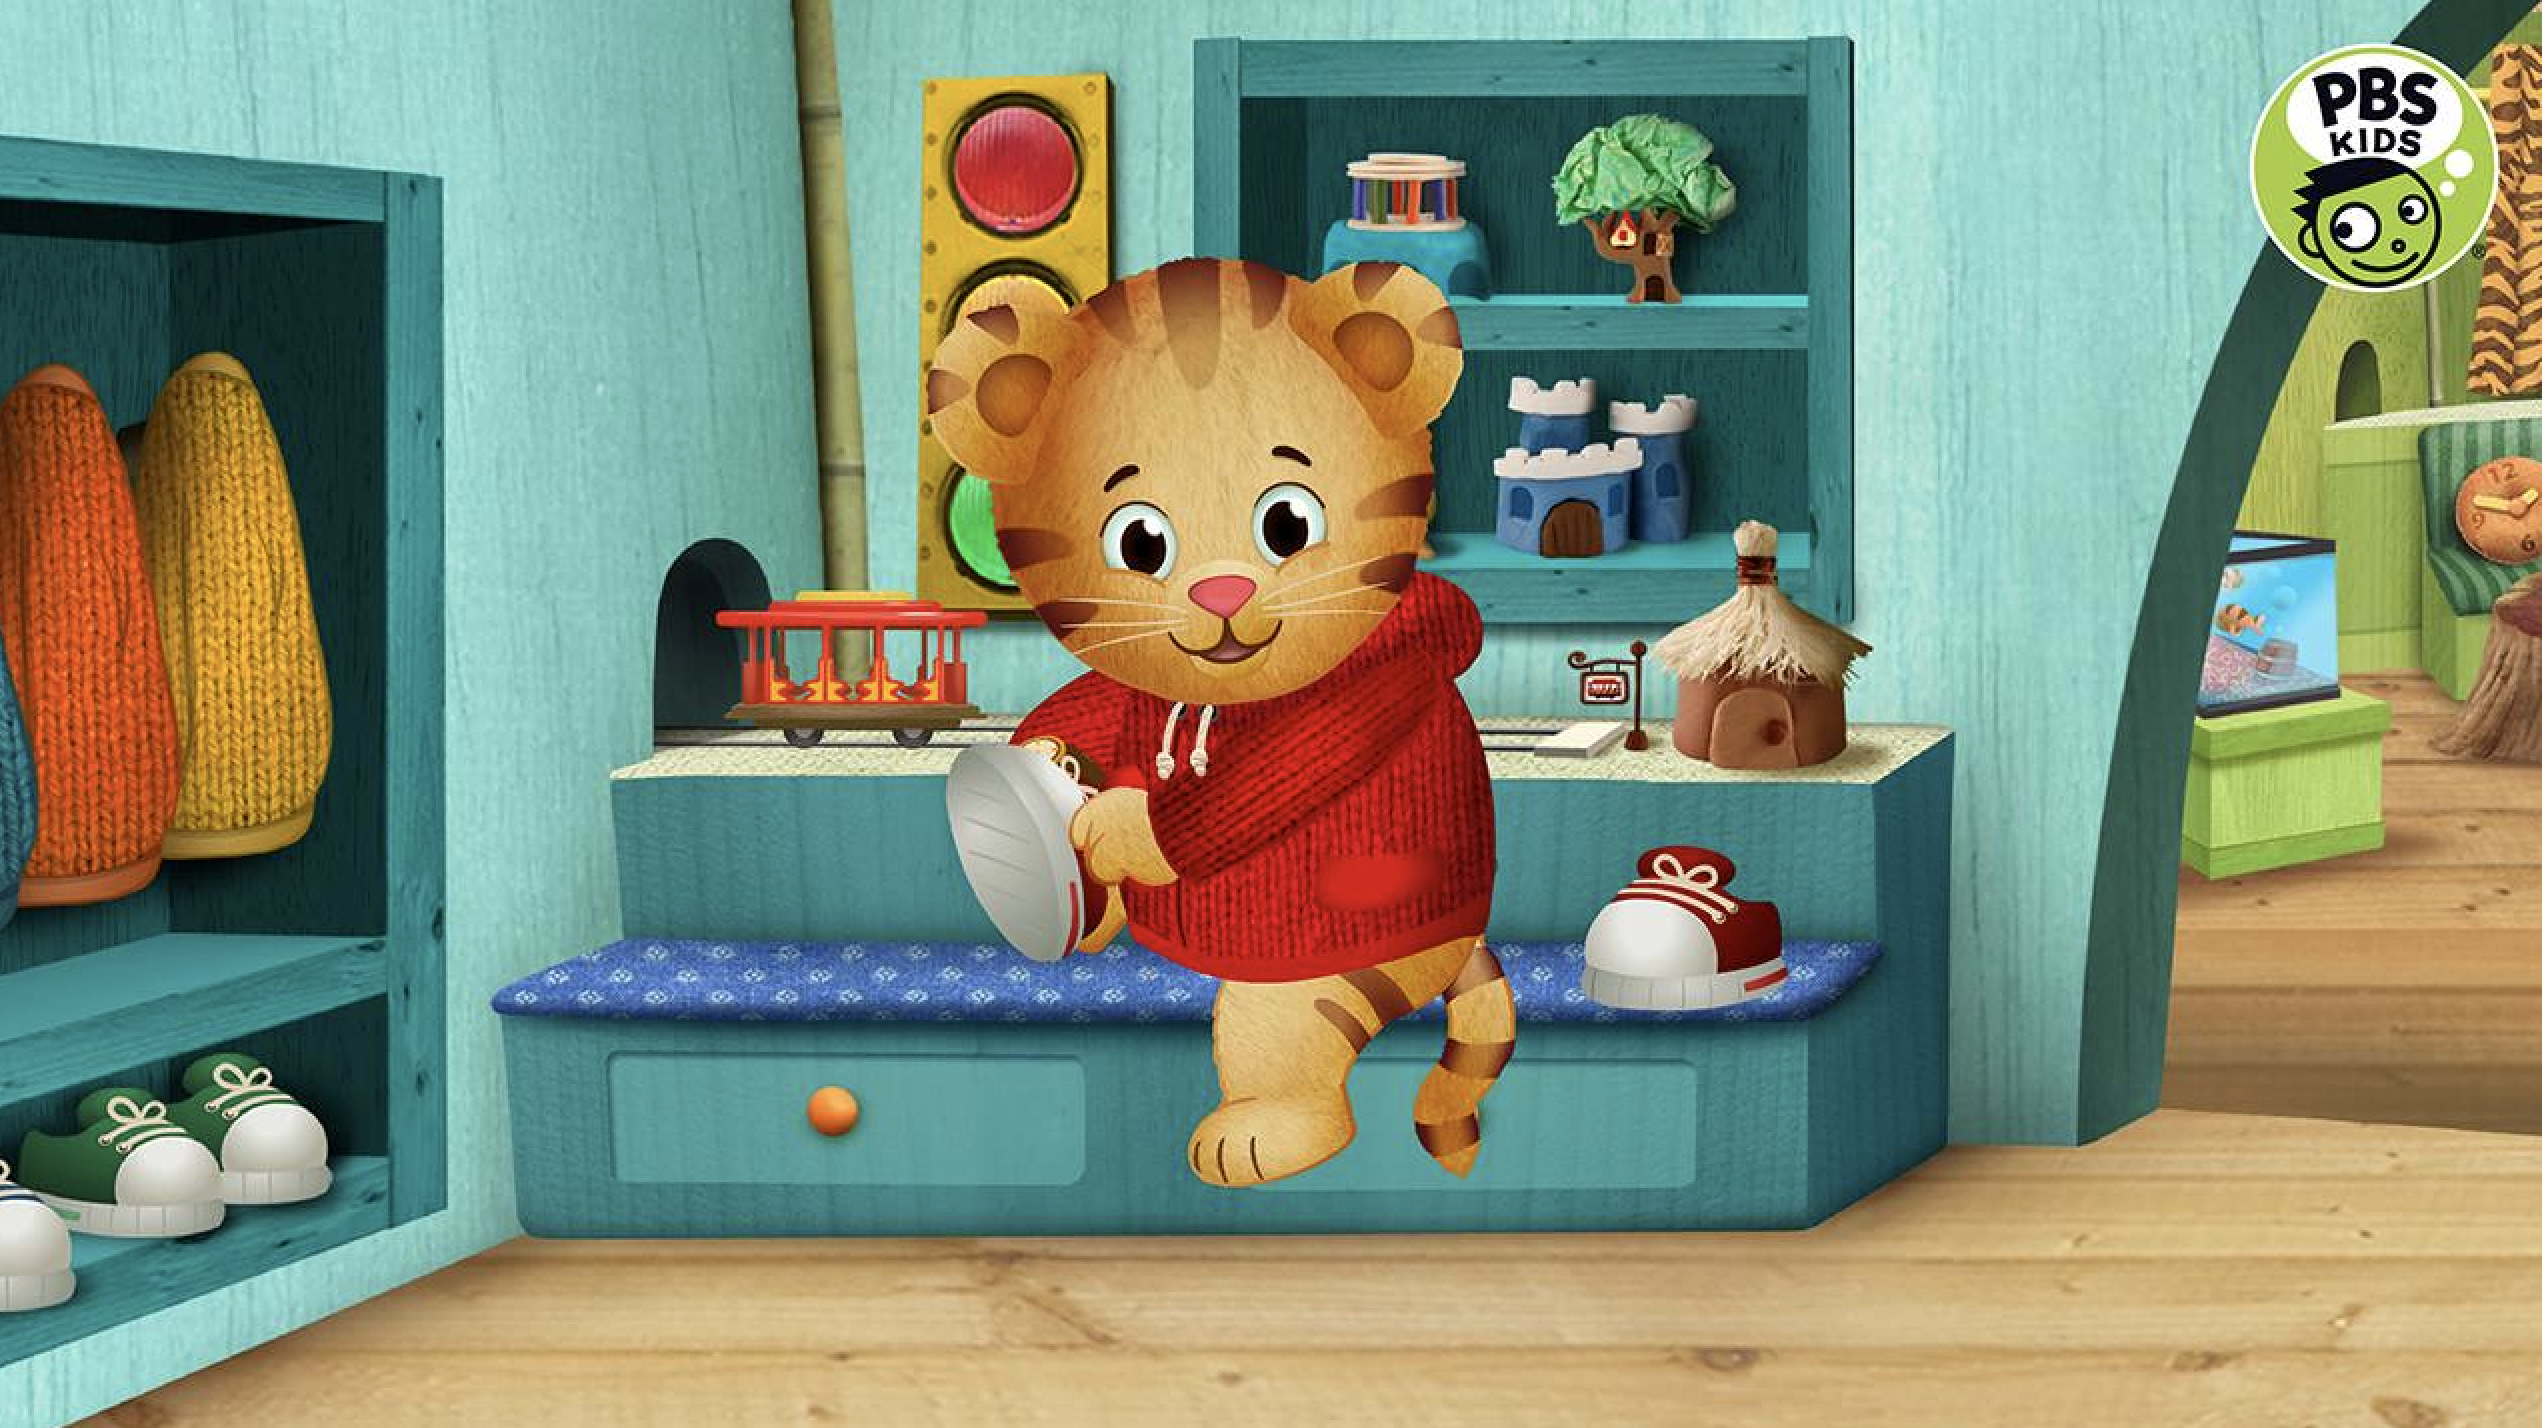 Pbs Kids And Fred Rogers Productions Announce Fifth Season Of Emmy Winning Series Daniel Tiger S Neighborhood